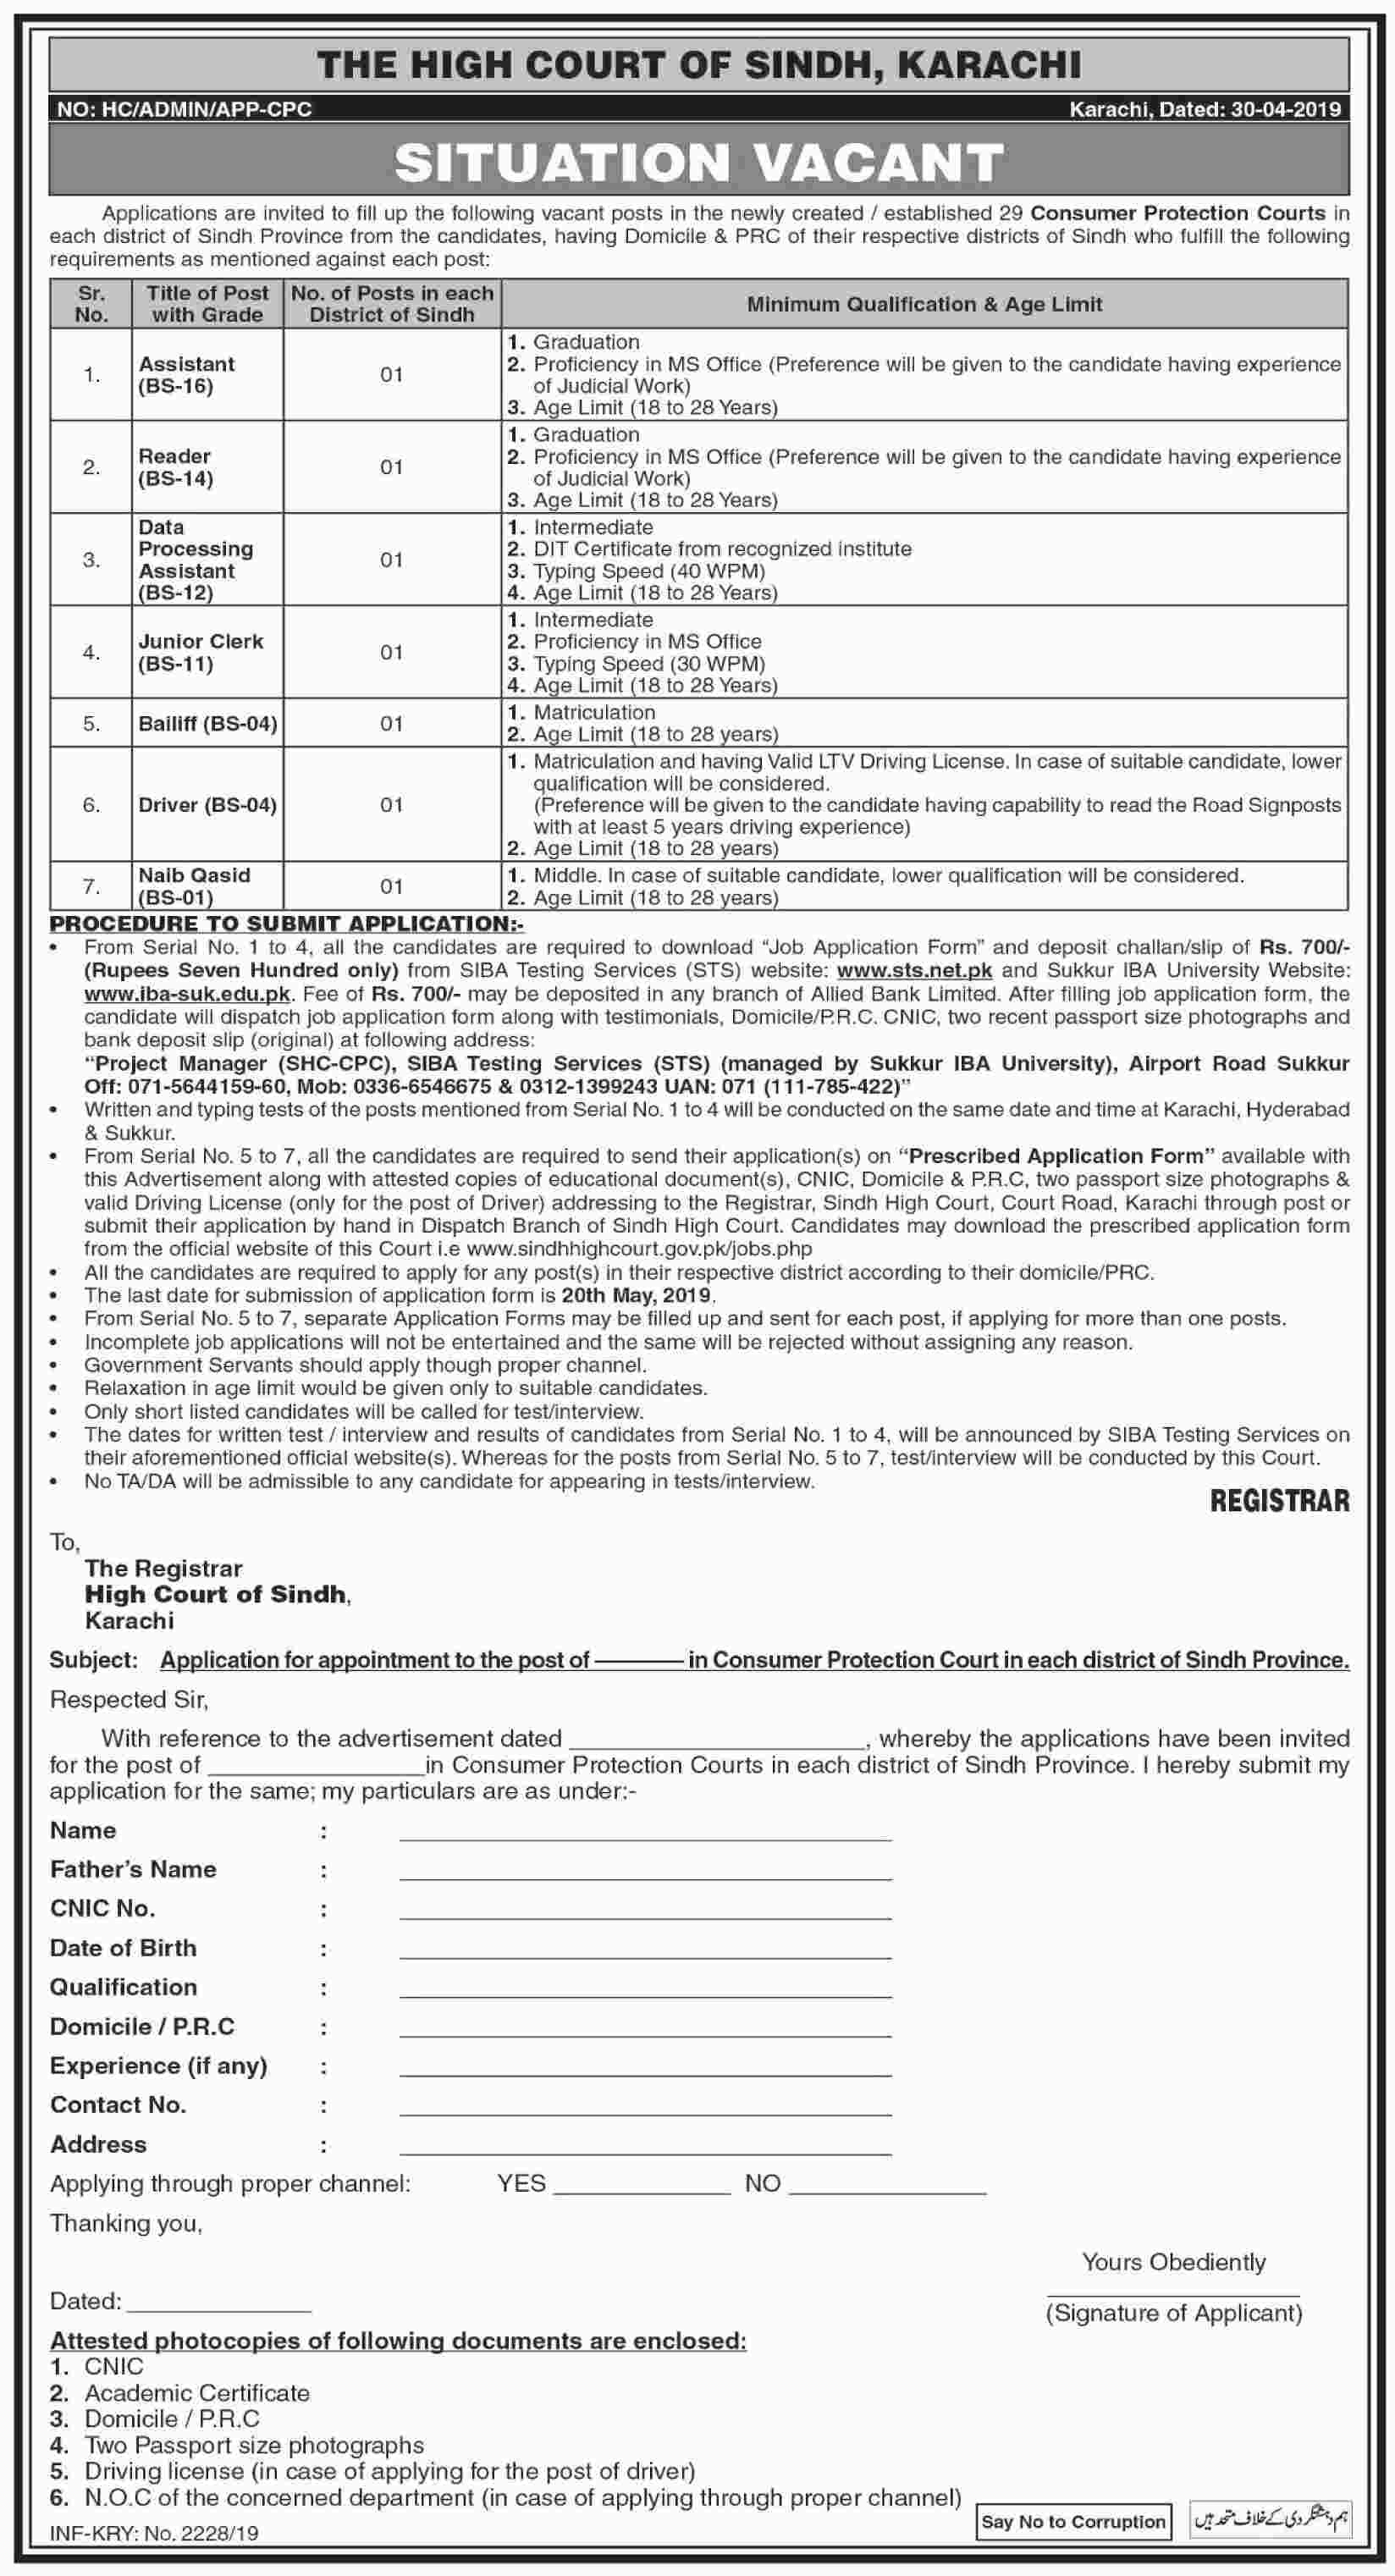 Jobs in The High Court of Sindh, Karachi 01 May 2019